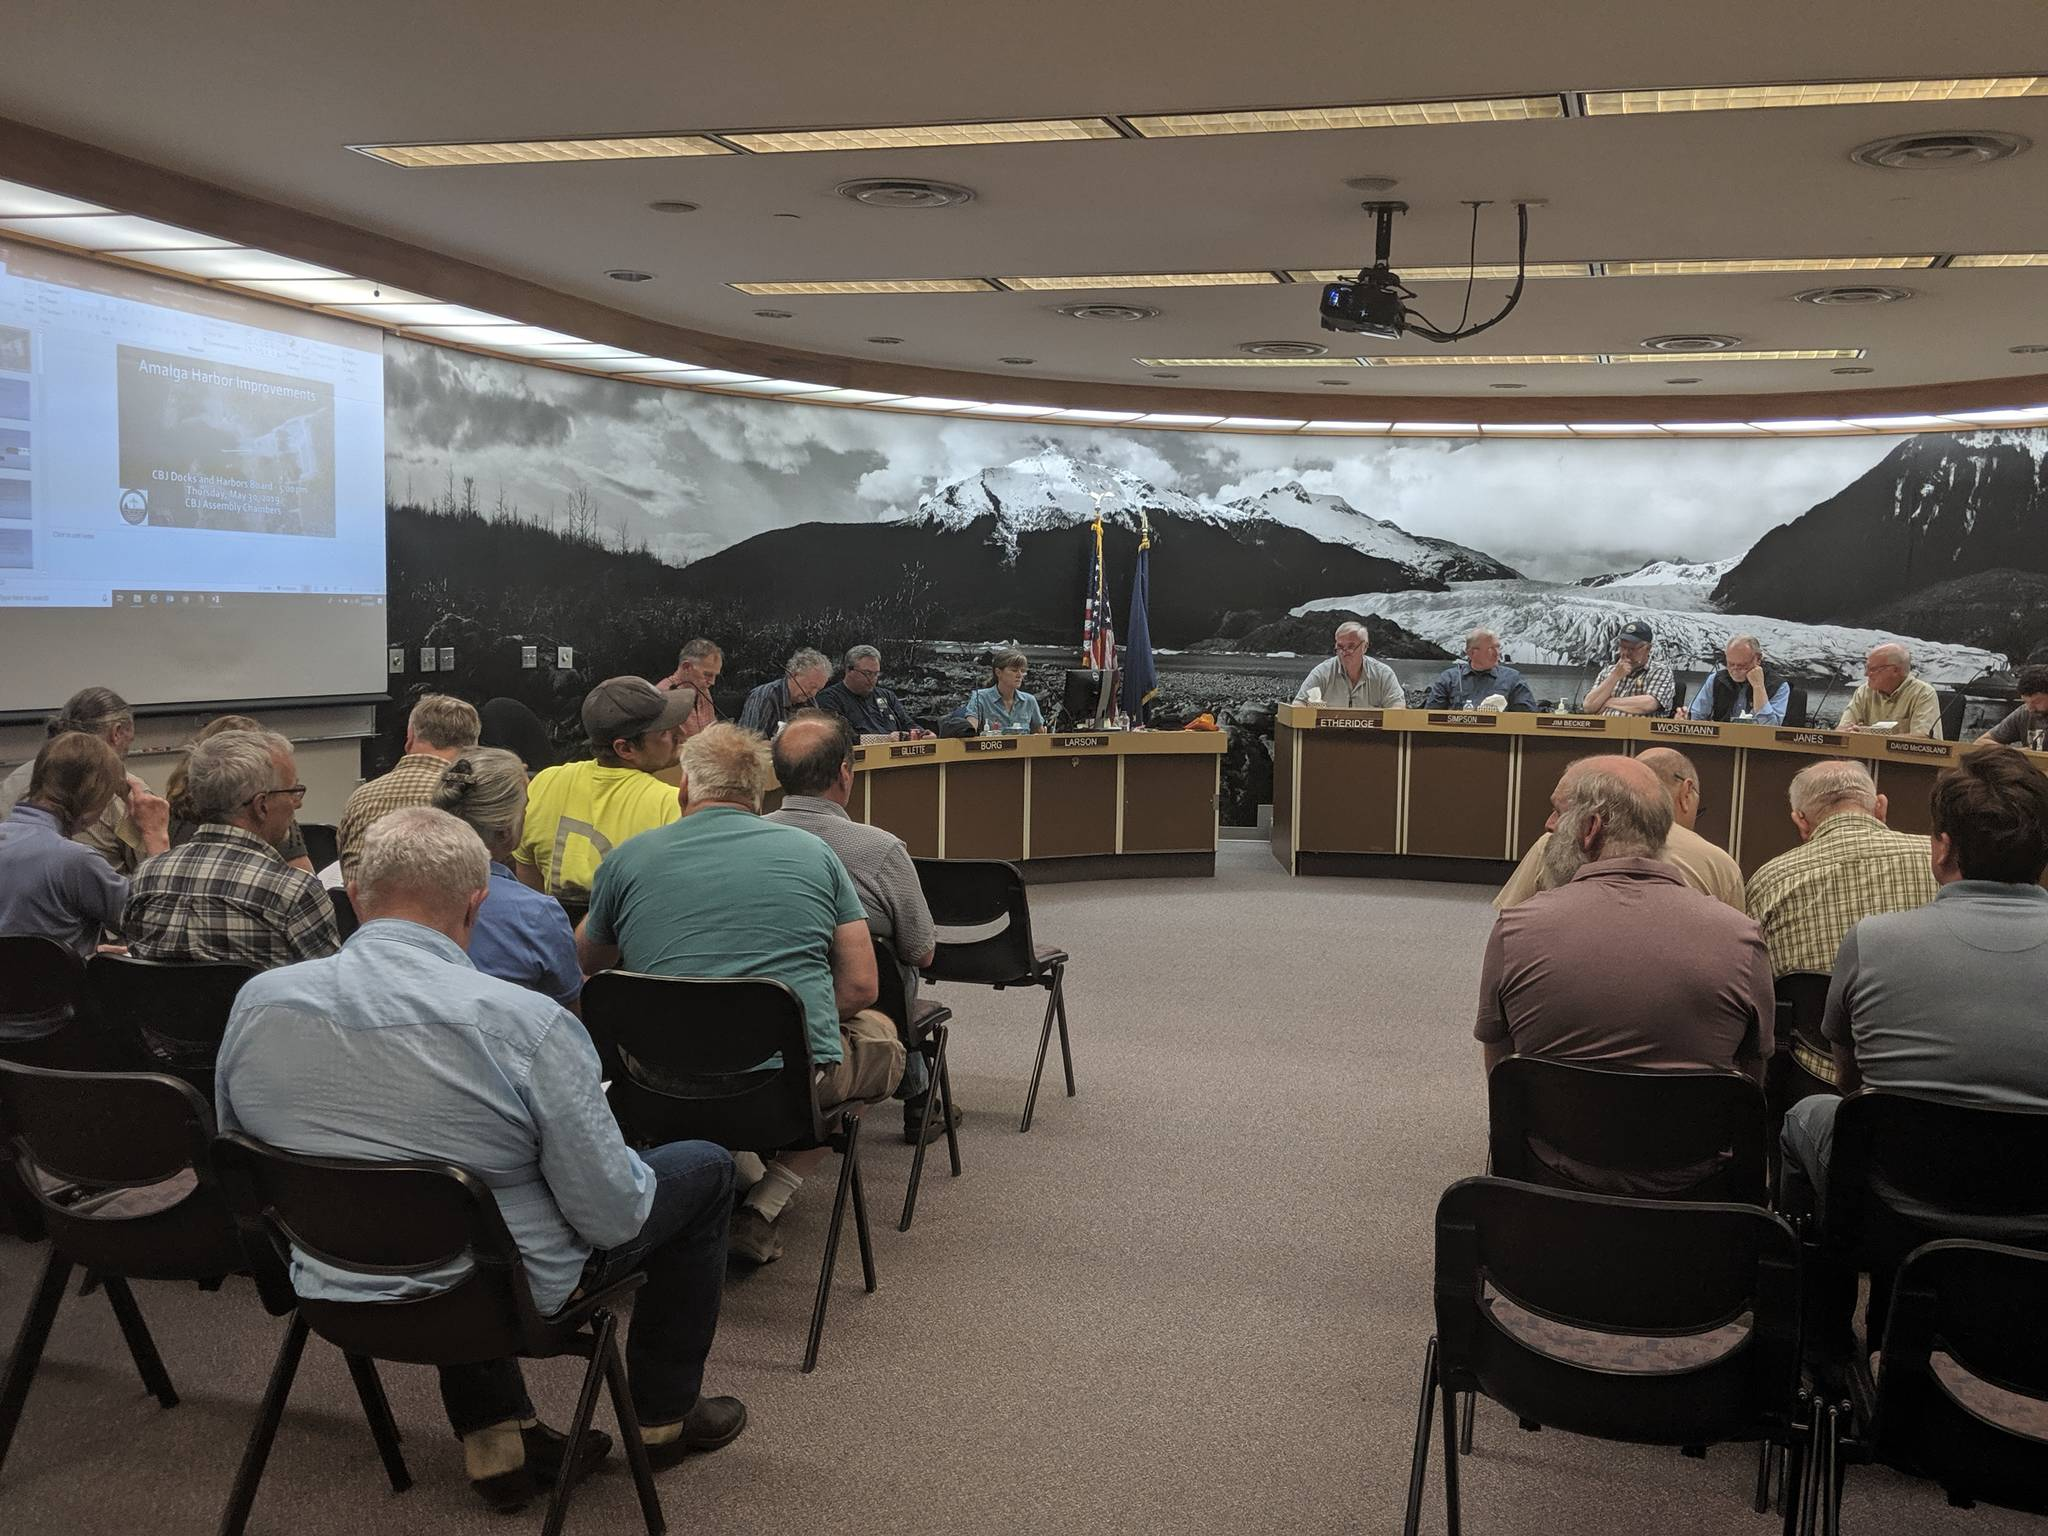 It wasn't quite a full house, but there were about two dozen people in attendance at Thursday's City and Borough of Juneau Docks & Harbors Board meeting. (Ben Hohenstatt | Juneau Empire)